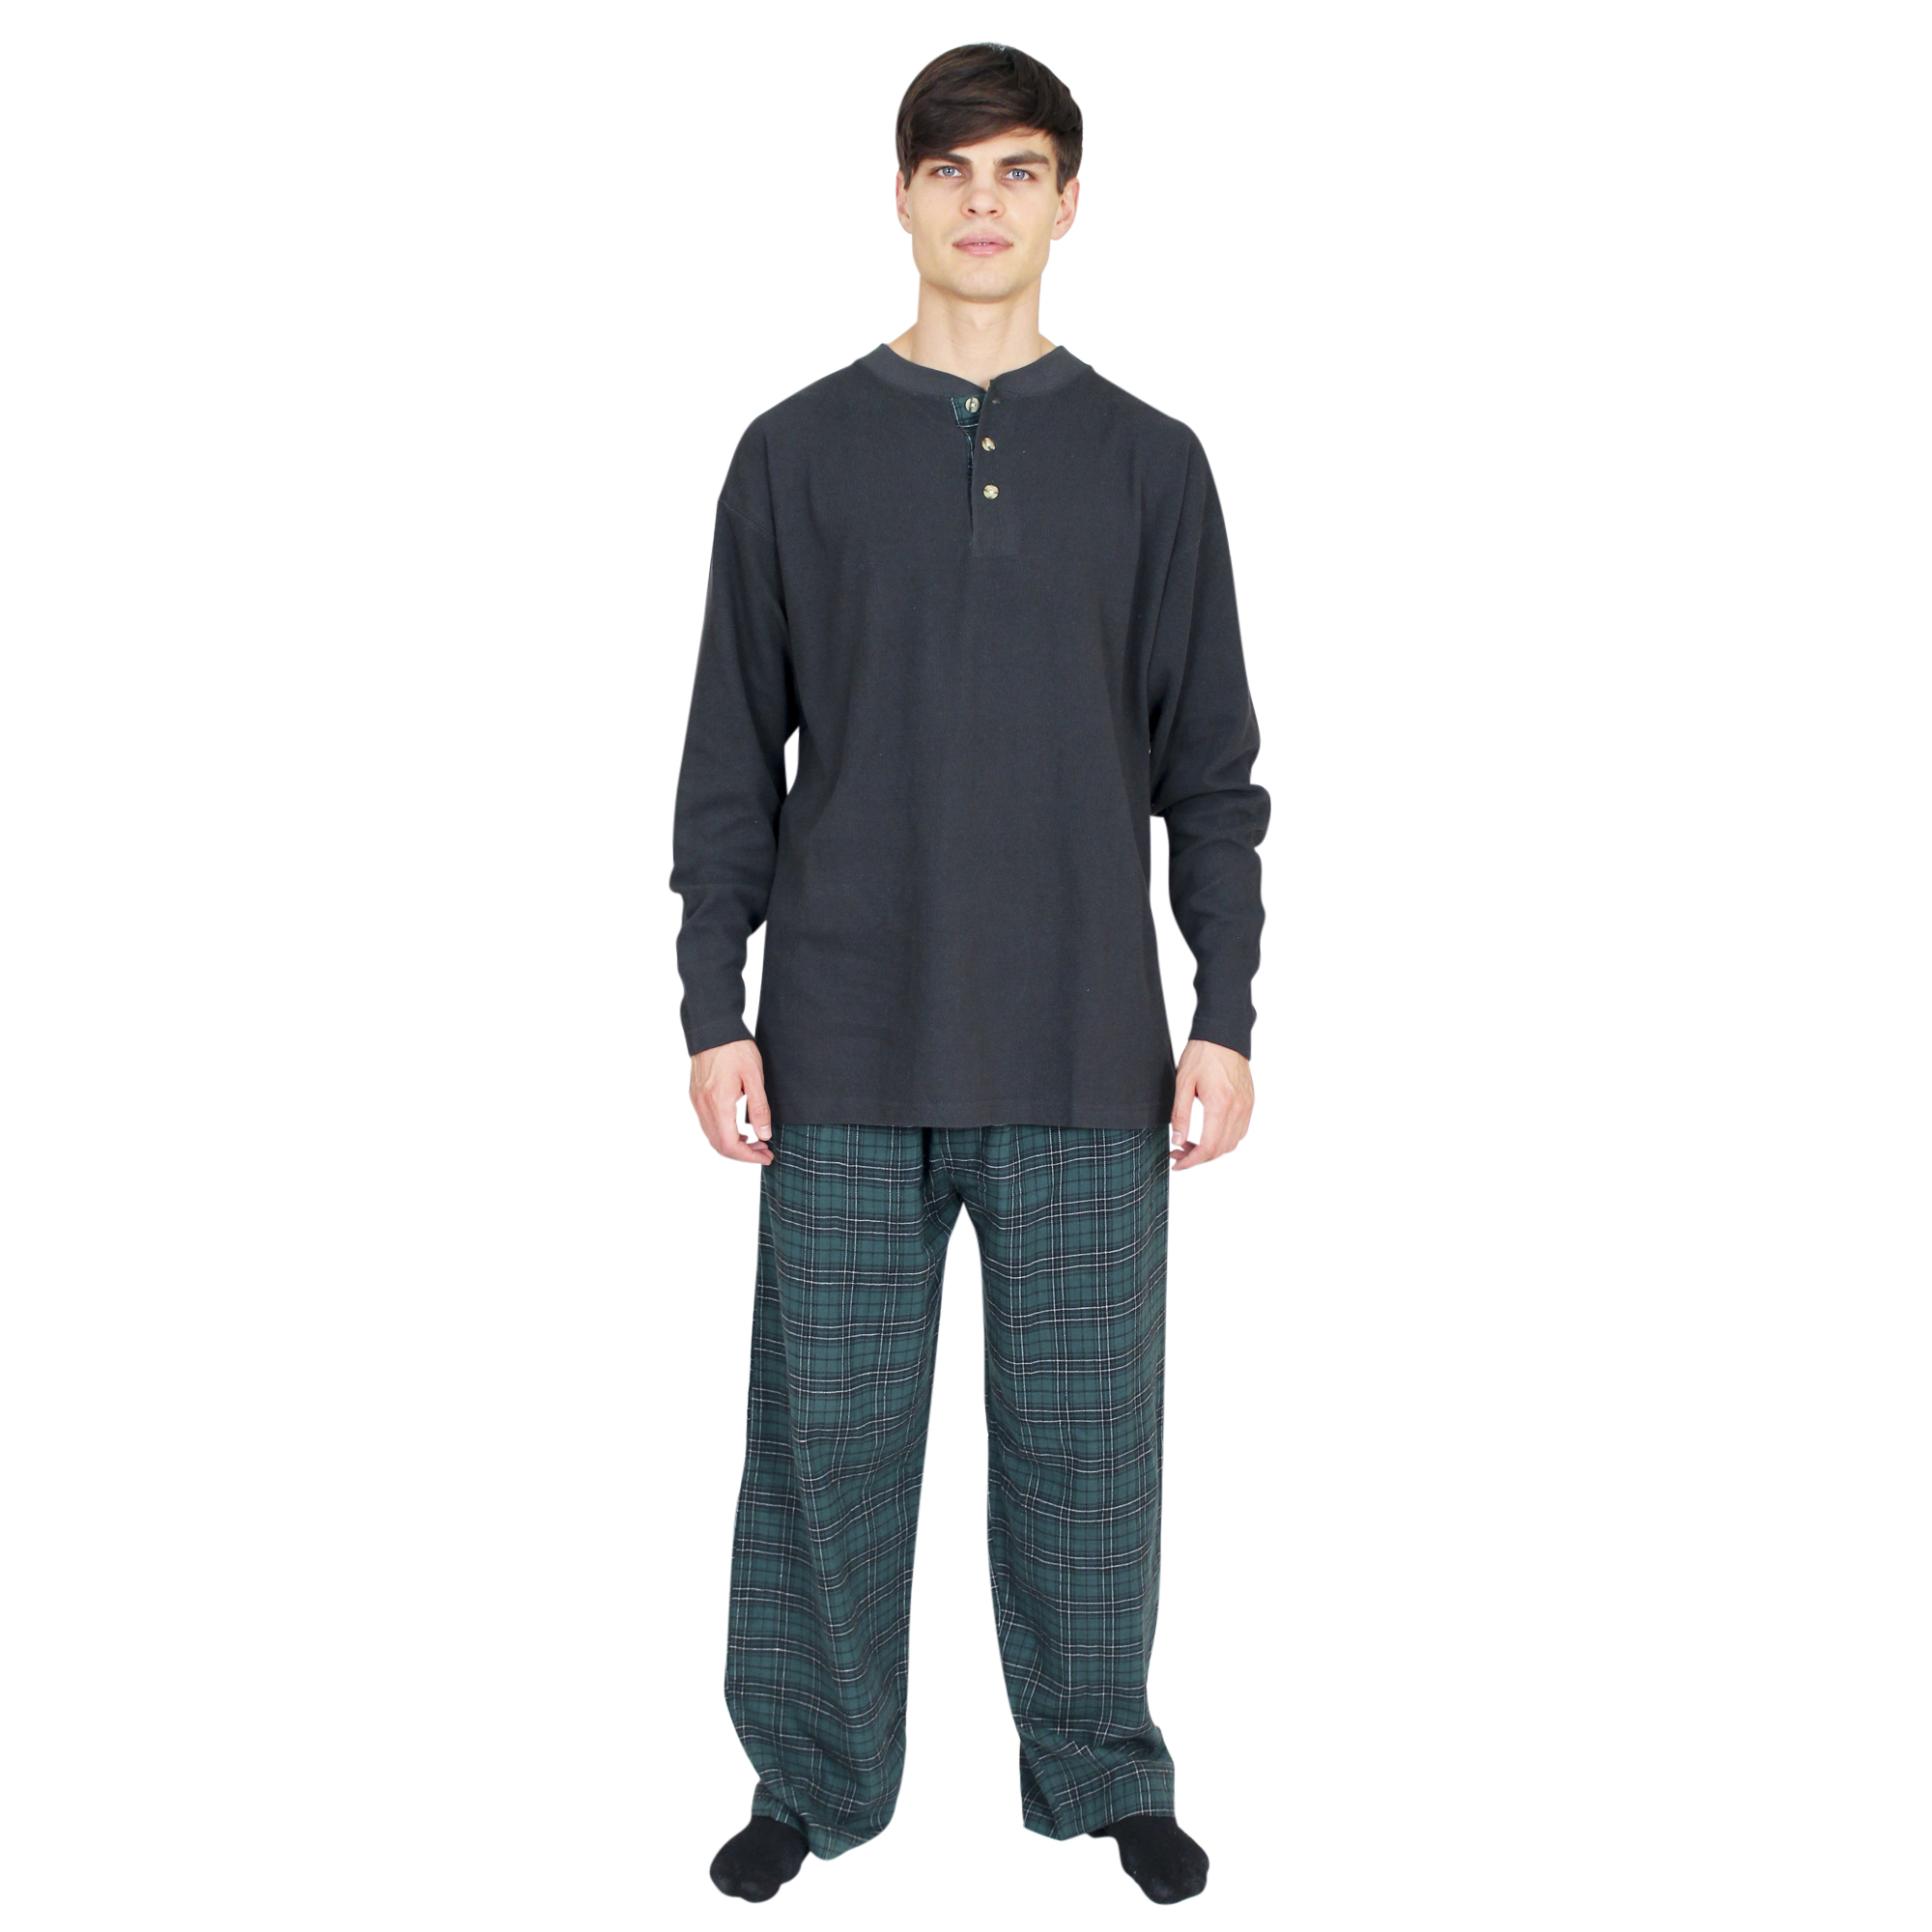 Men&#39;s Pajamas & Loungewear: Waffle/Flannel Set  - $24.99 Colors: Black/Blackwatch, Gray-Heather/Gray-Check. Sizes:  out of stock ... <p>Mens pajama set with structured waffle knit top and 100% cotton yarn dyed flannel pant. The men&#3